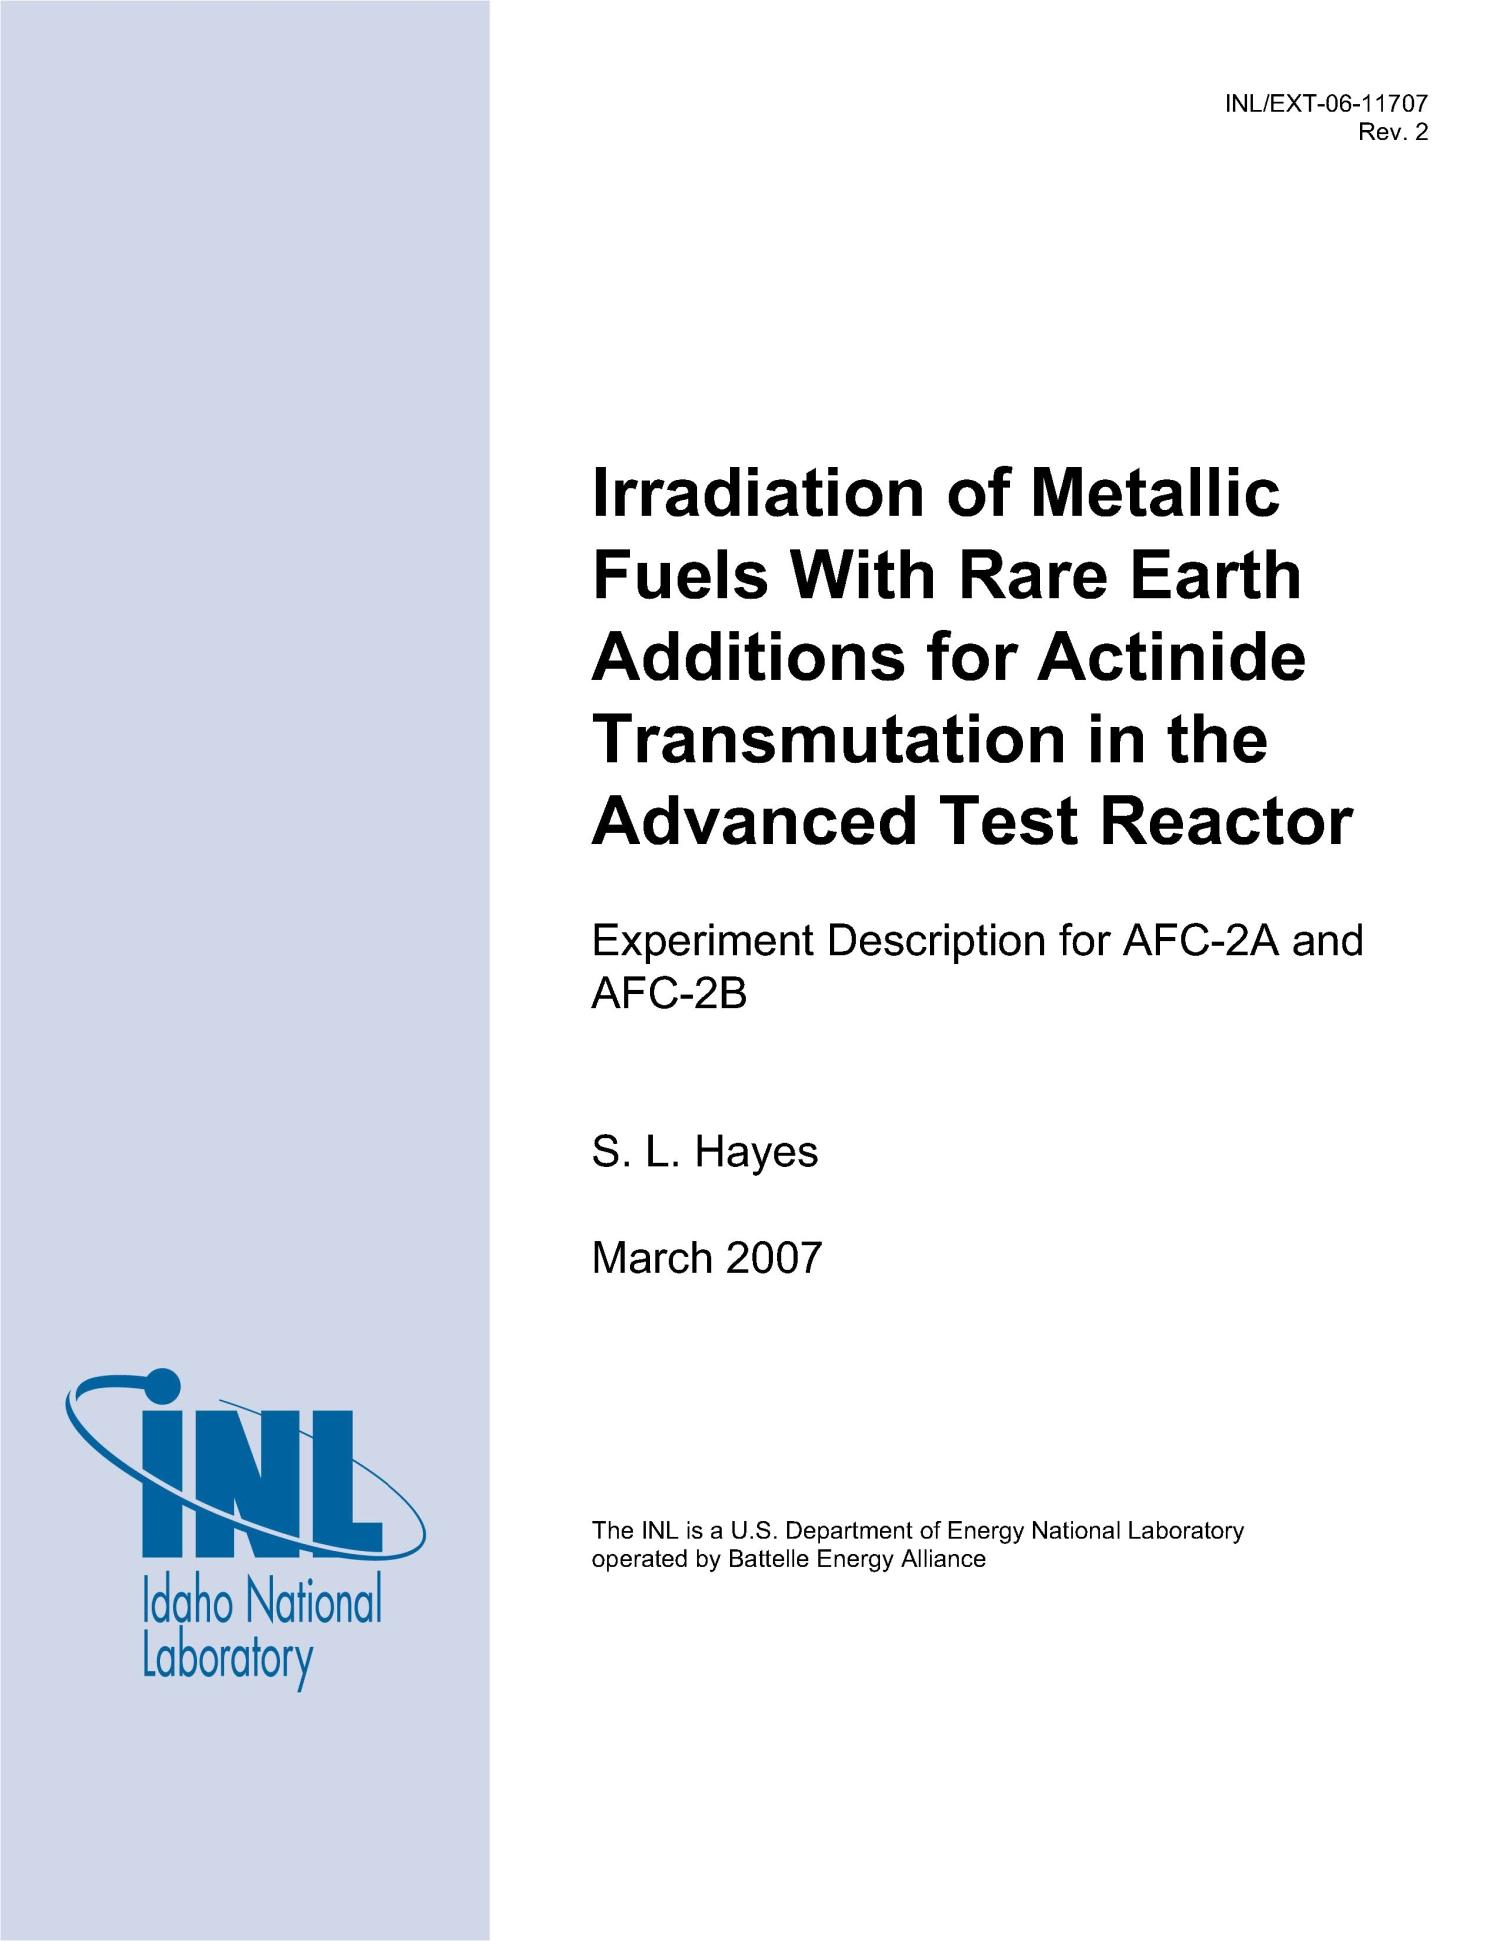 Irradiation of Metallic Fuels with Rare Earth Additions for Actinide Transmutation in the ATR. Experiment Description for AFC-2A and AFC-2B                                                                                                      [Sequence #]: 1 of 20